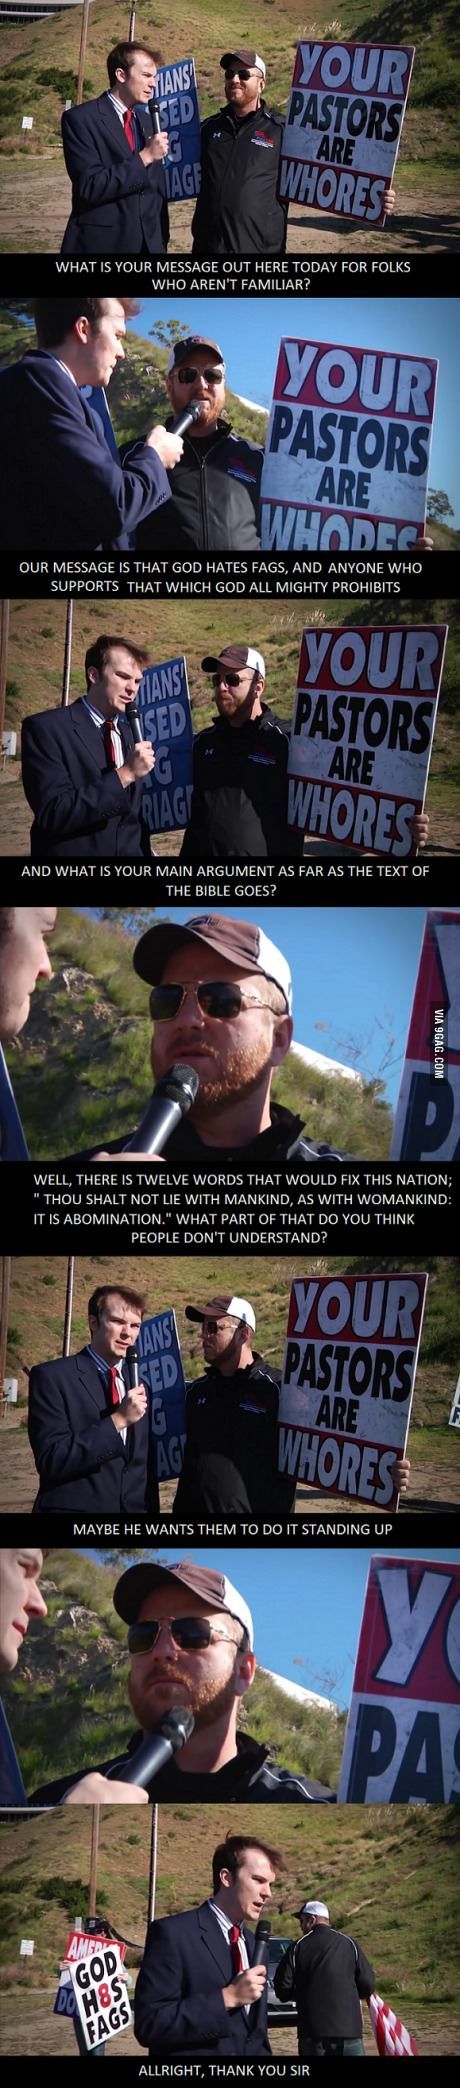 WestBoro Baptist Church Gets Trolled... don't know who this reporter is, but he deserves an award